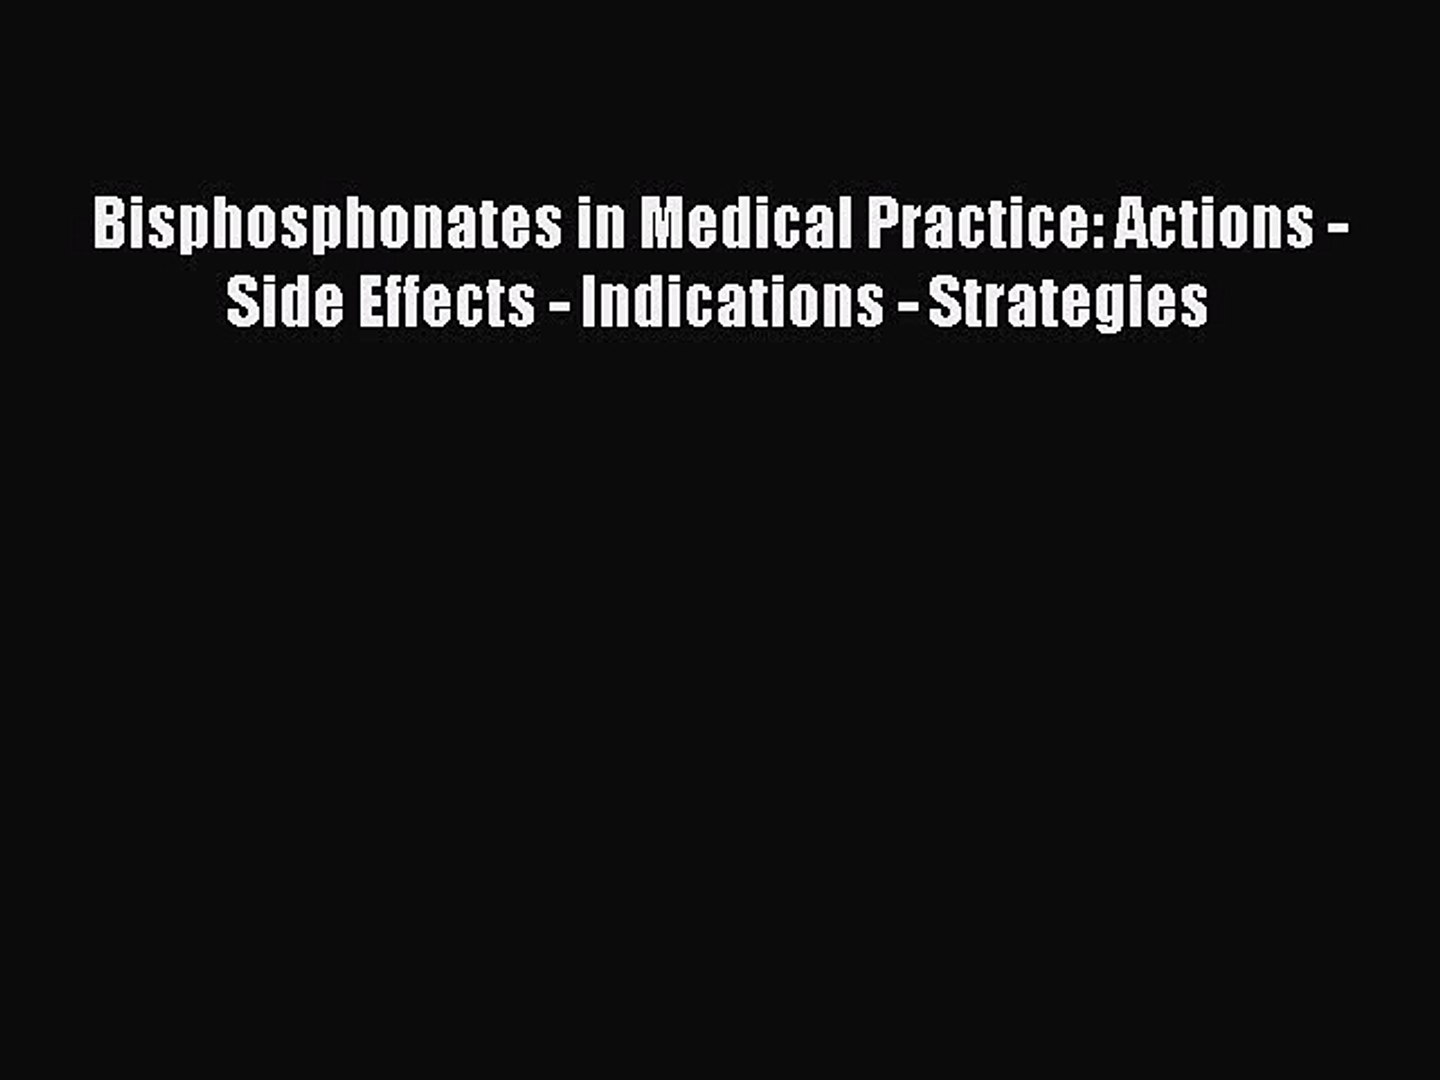 Bisphosphonates in Medical Practice: Actions — Side Effects — Indications — Strategies